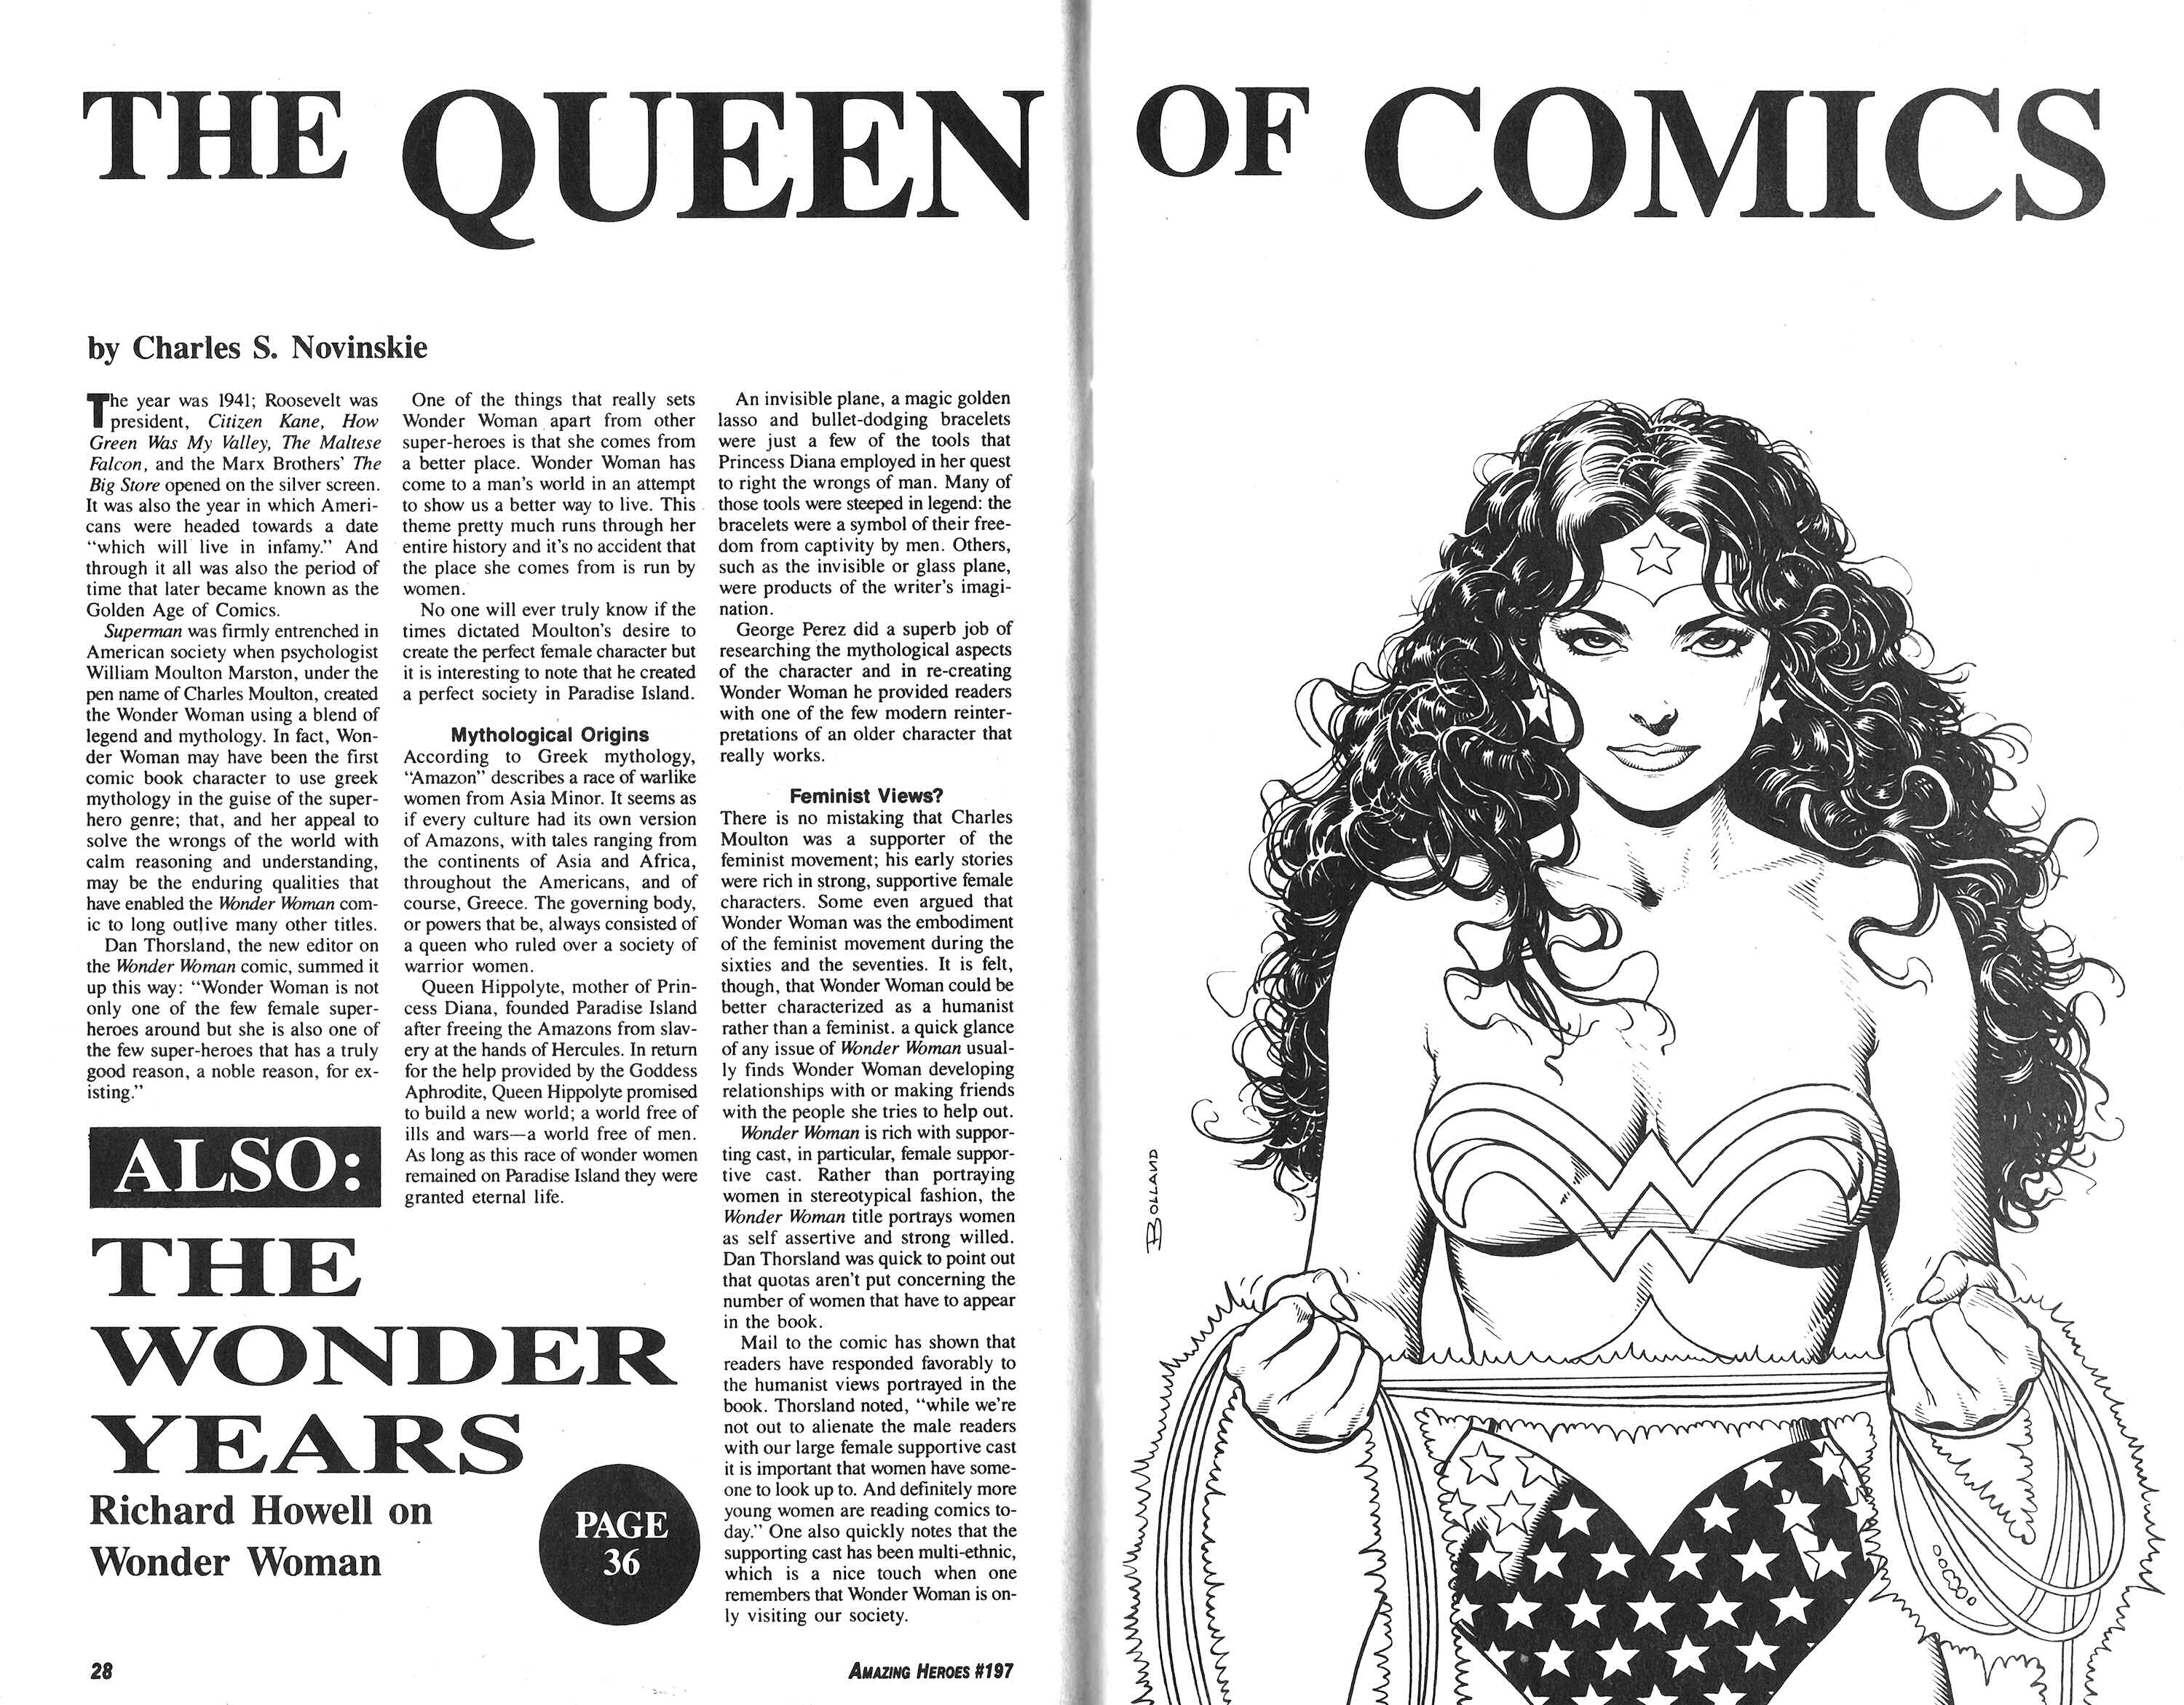 Read online Amazing Heroes comic -  Issue #197 - 15